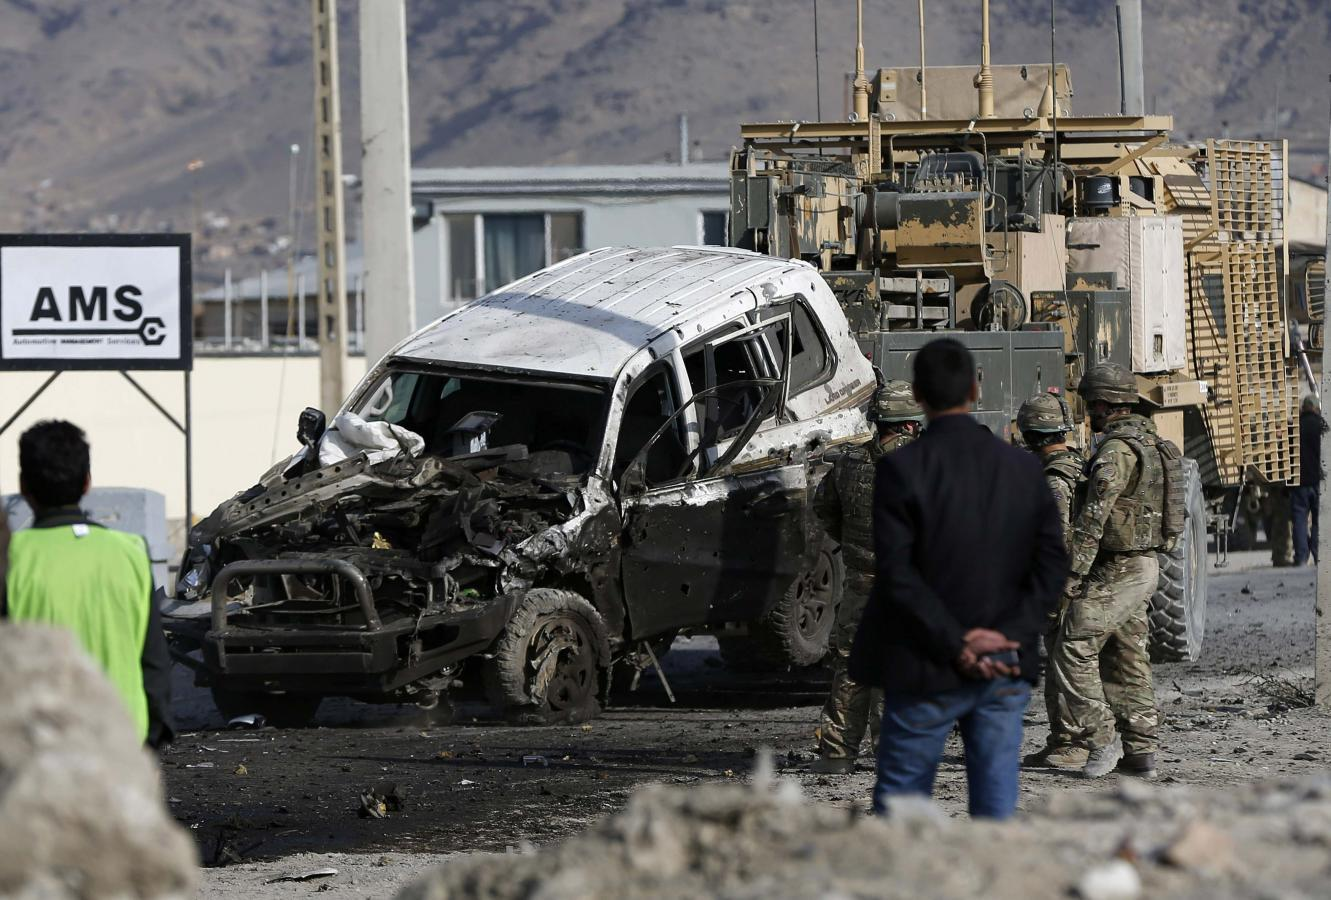 Taliban ambush in Afghan north, bombs in capital and elsewhere kill 25